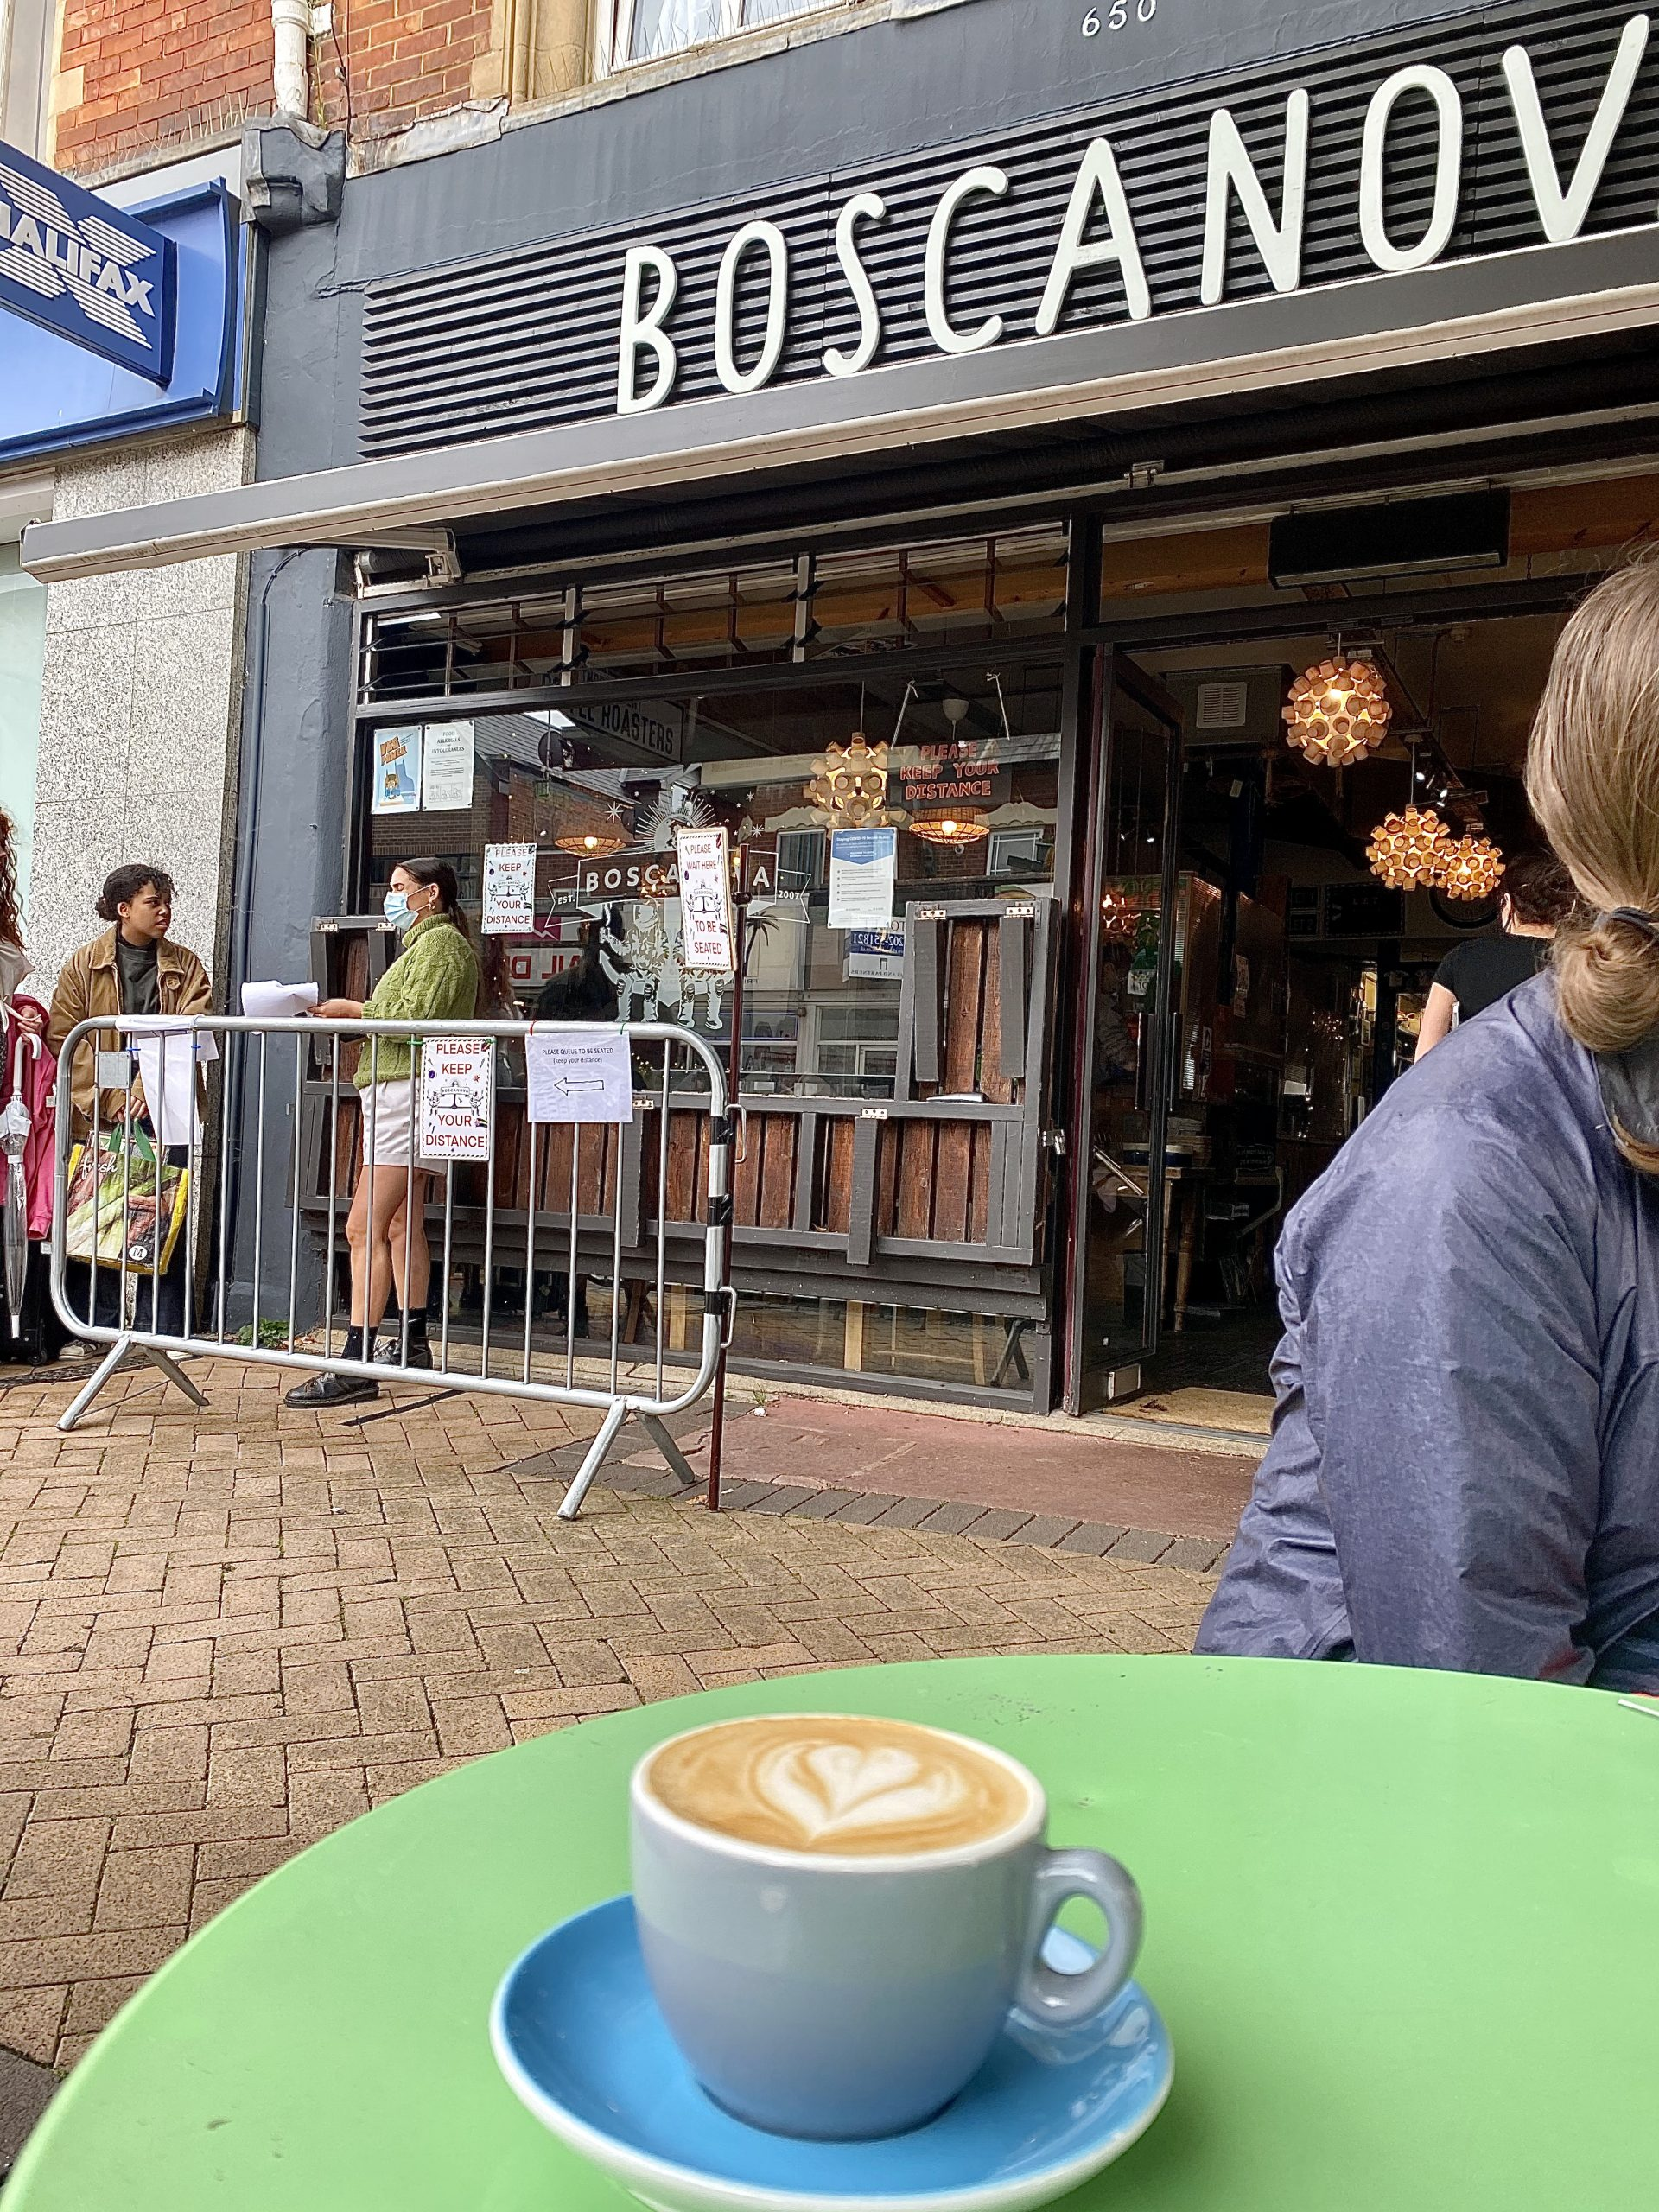 Review of Cafe Bosconova in Bournemouth